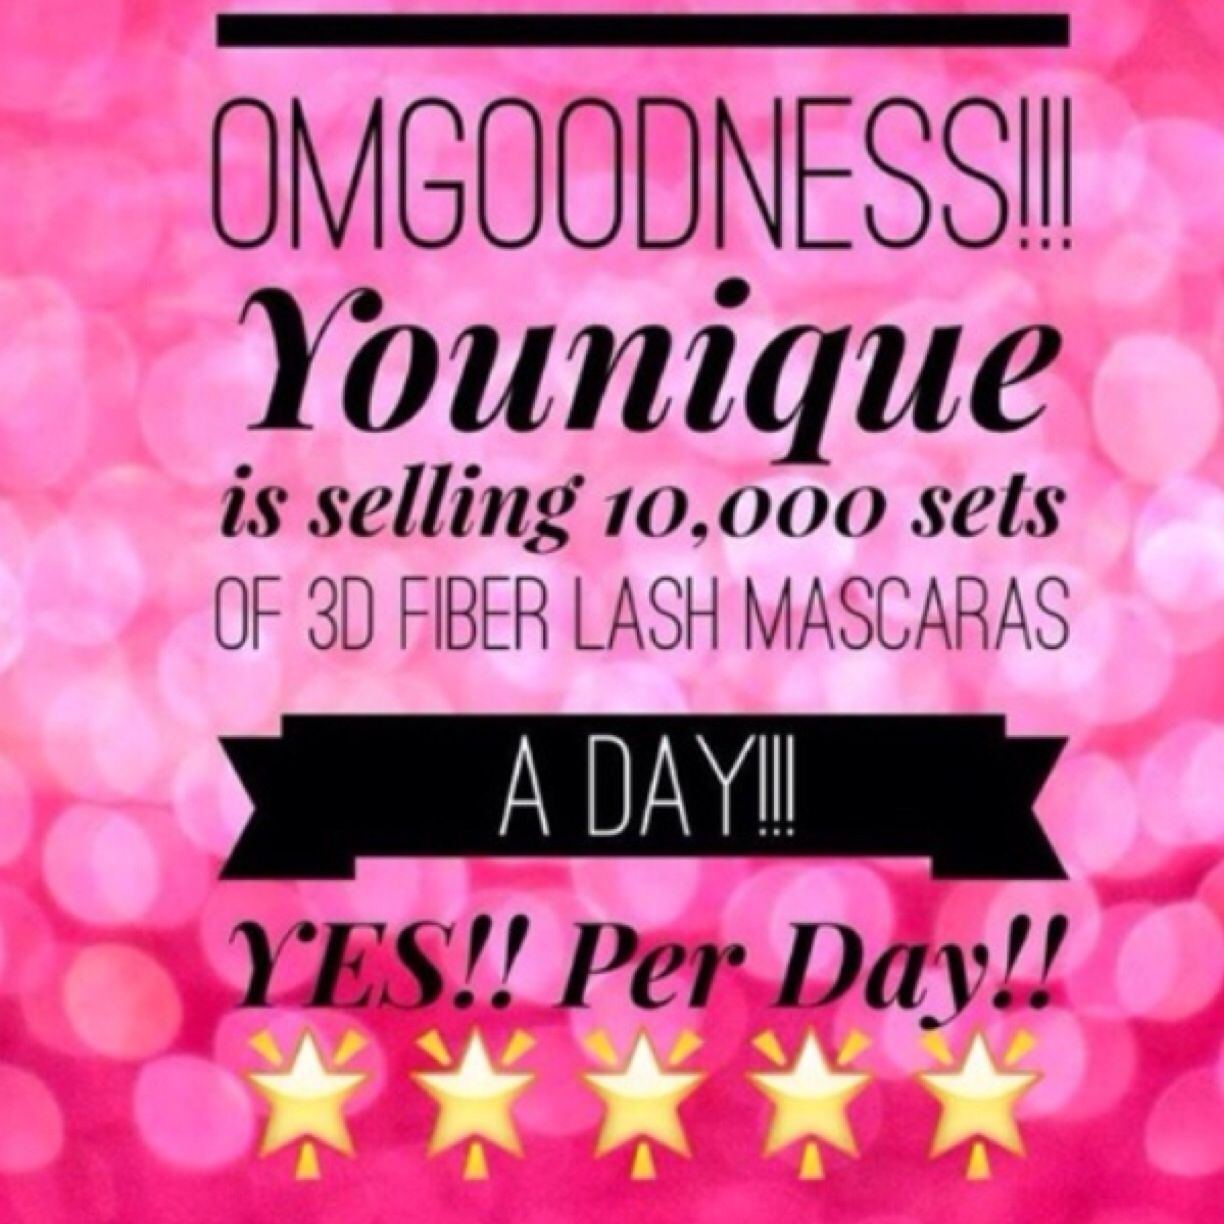 Get on the lash train now! Sales are flying thru the roof!